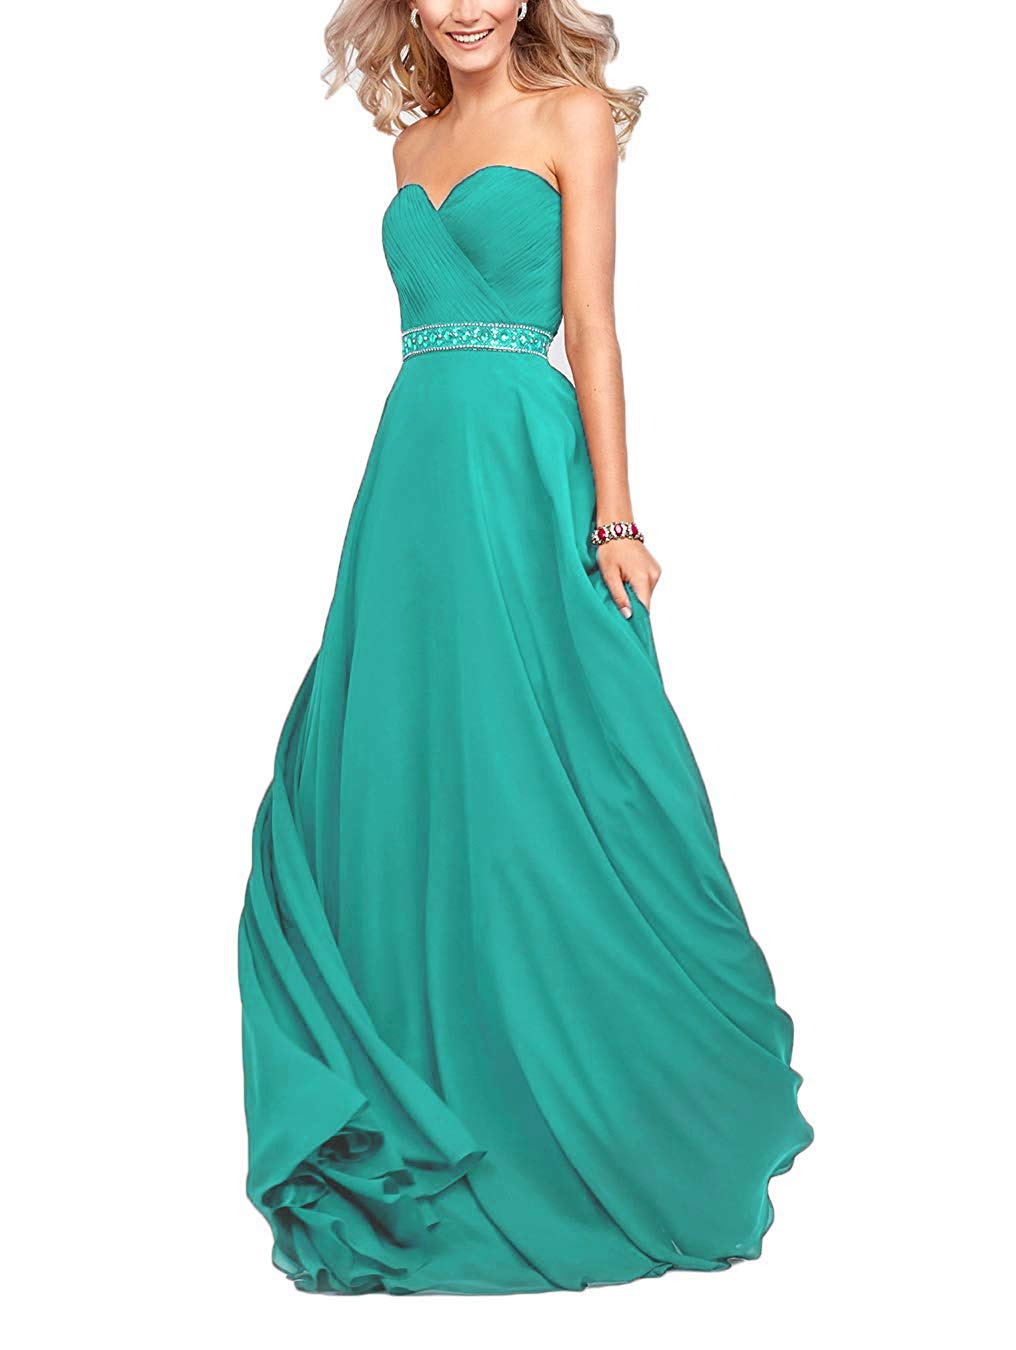 39d6ad66e893 Bellis Women's Sweetheart A Line Beaded Chiffon Bridesmaid Dresses Long  Prom Dress Evening Gowns B067 Turquoise